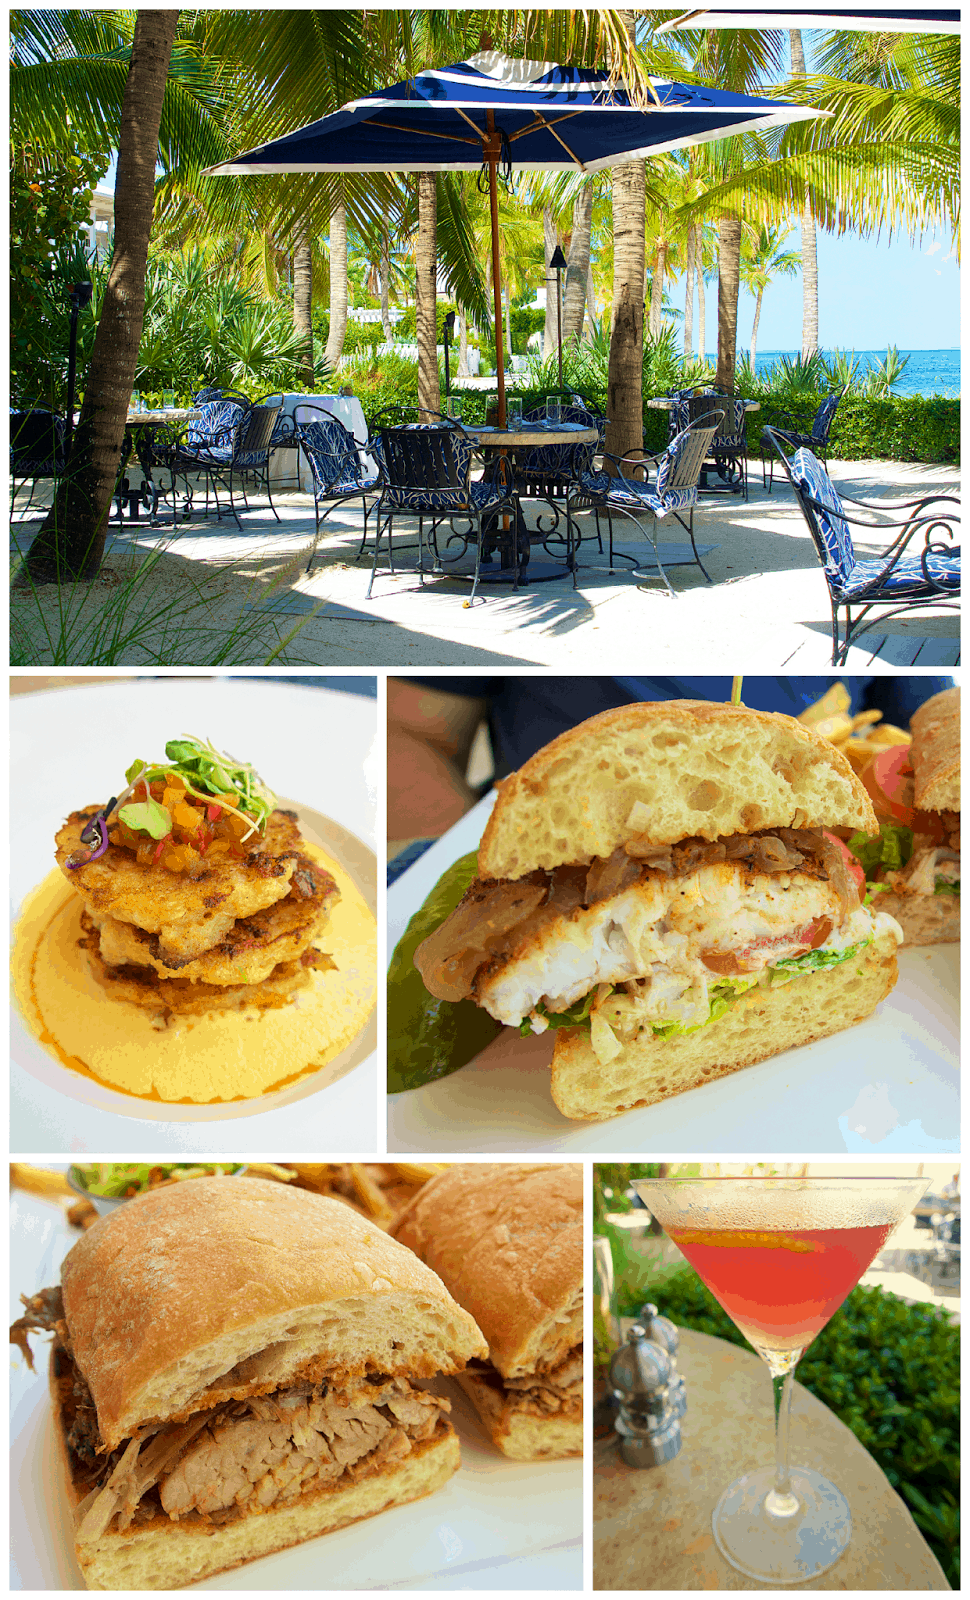 Latitudes Restaurant Sunset Key - Key West, FL - dine in paradise! Located on Sunset Key, a private island just a ferry boat ride from Key West.